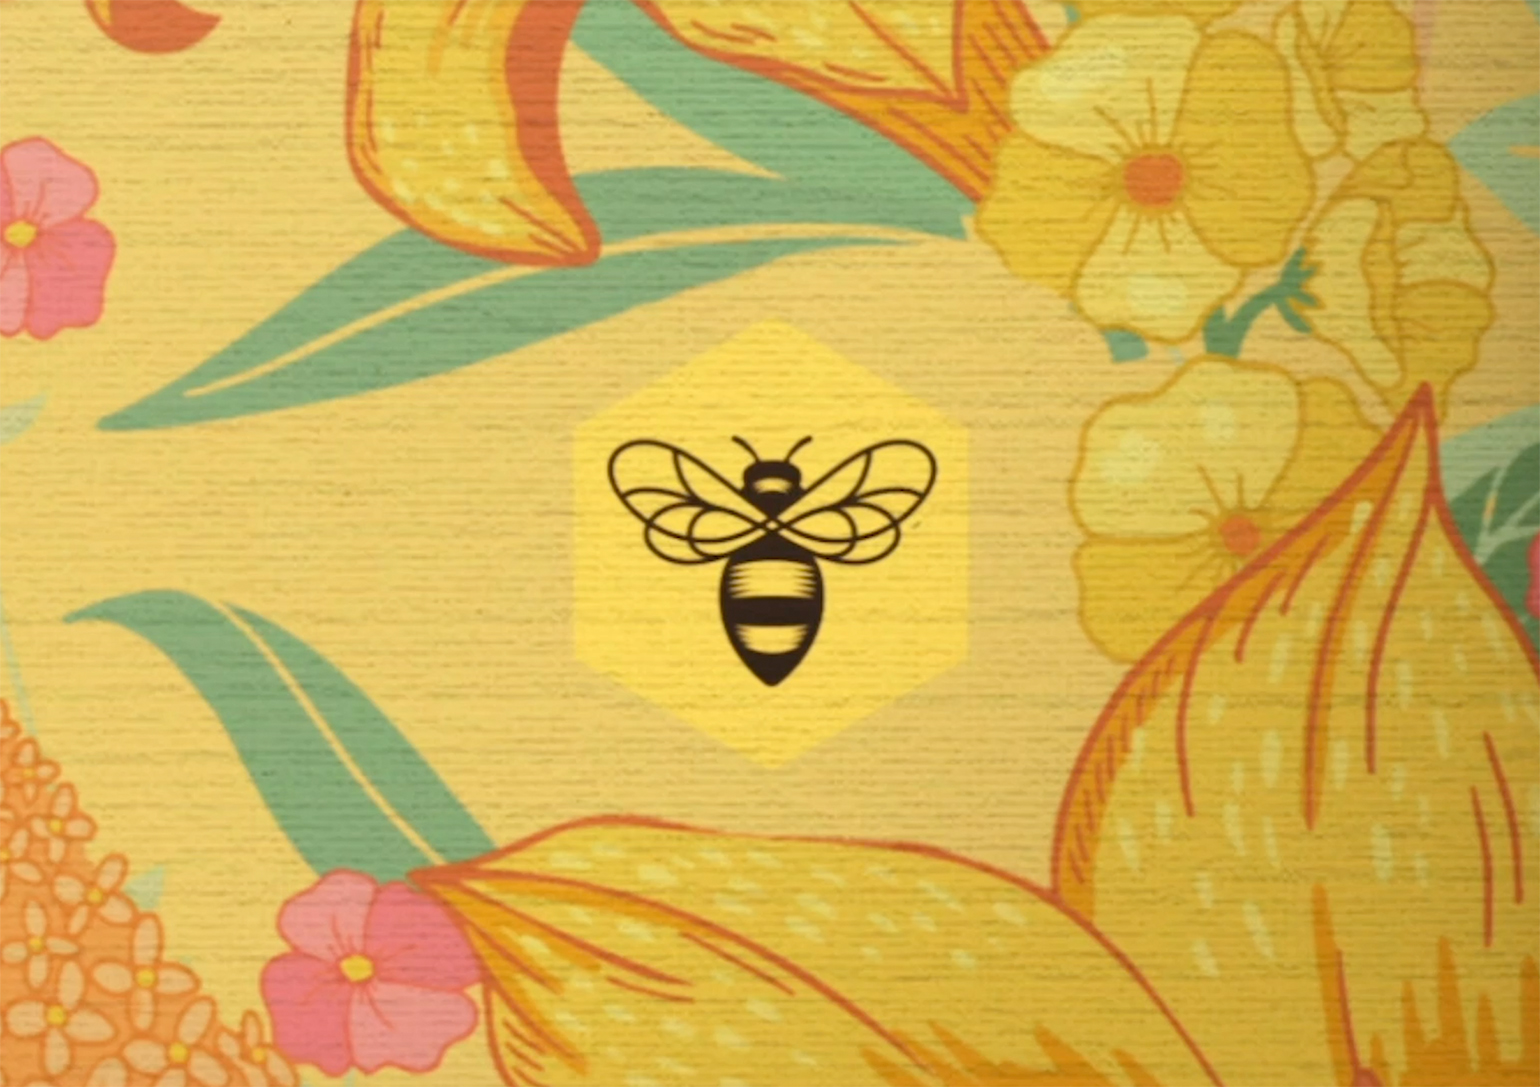 Burt's Bees Backgrounds